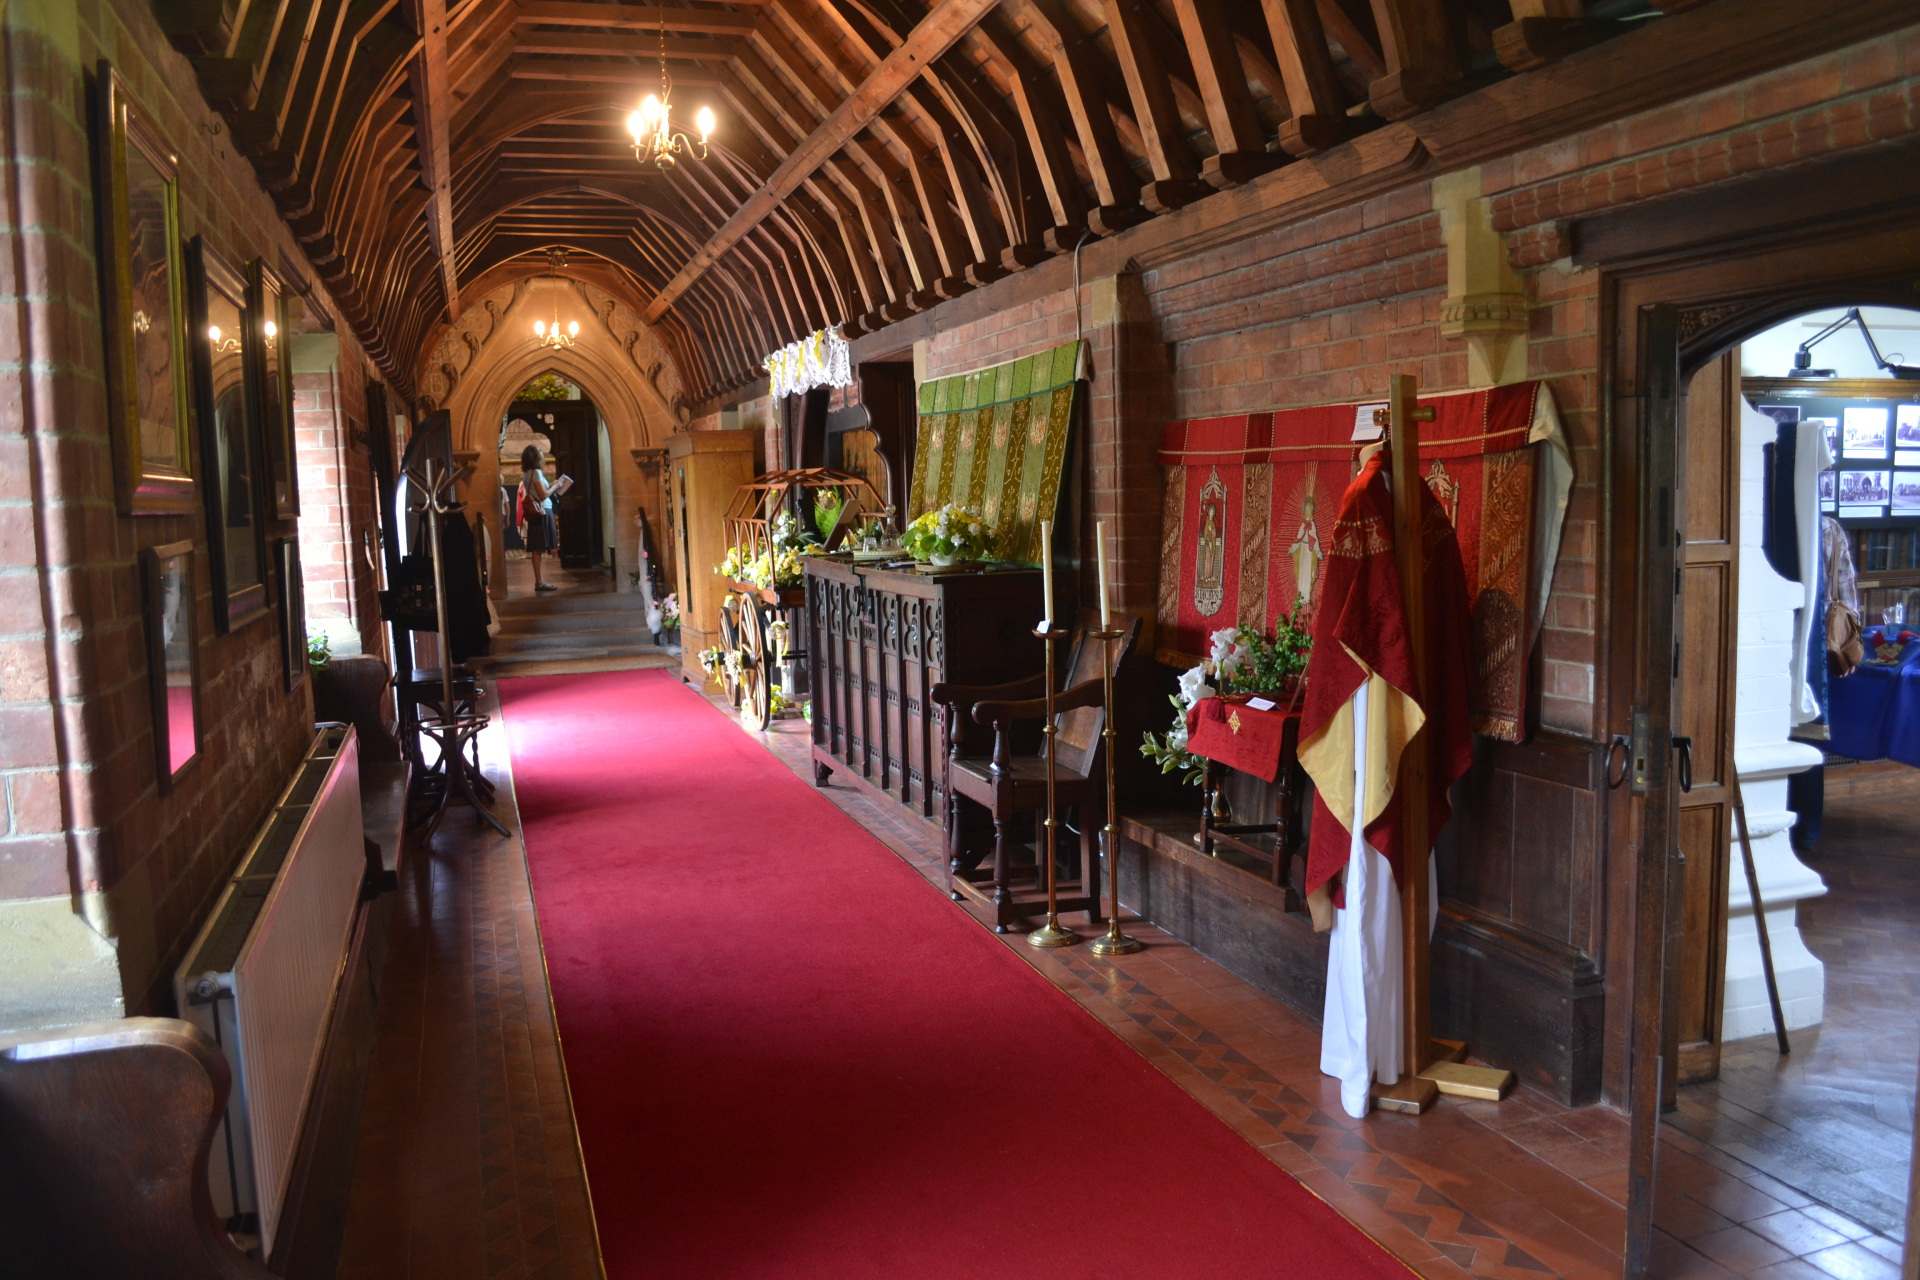 The cloister being used as an exhibition area